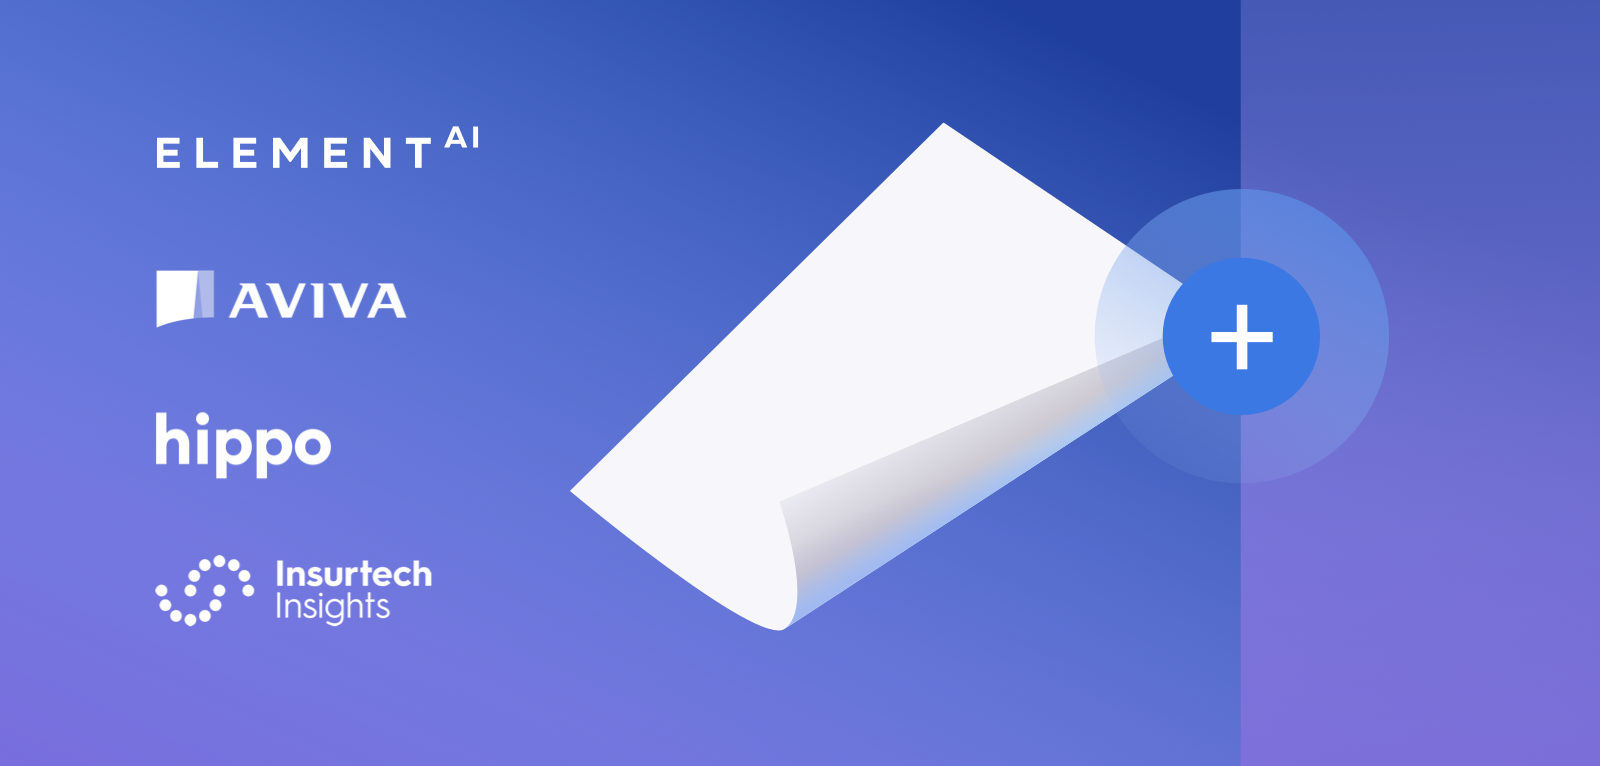 Webinar: Leading insurance experts weigh in on the advantages of deploying AI in P&C underwriting